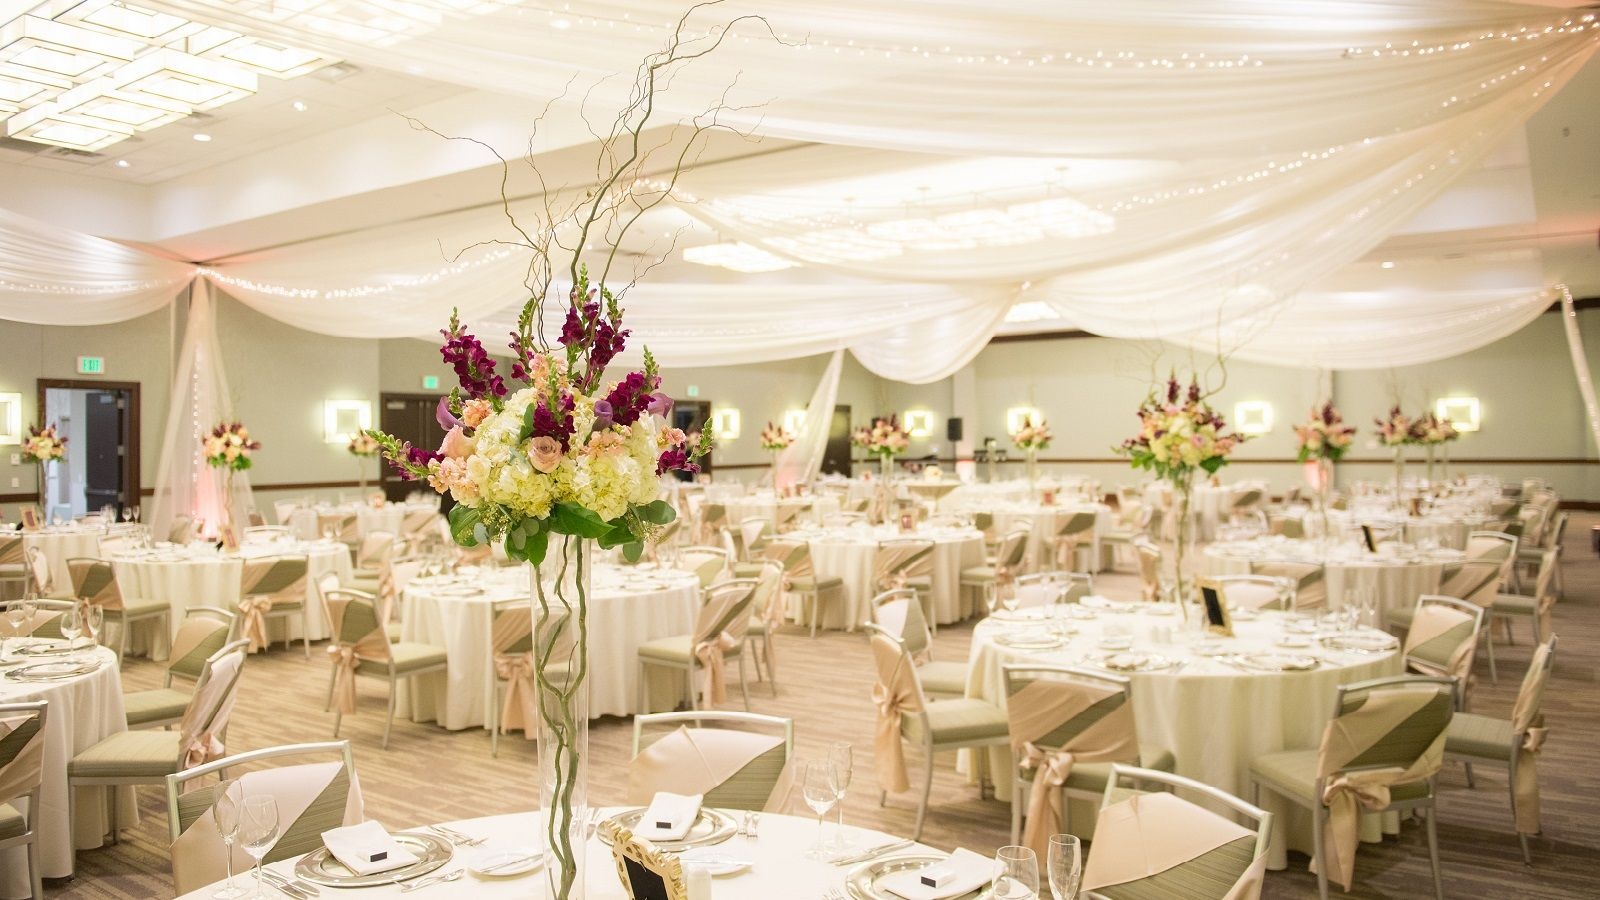 The Westin Edina Galleria - Wedding Venue